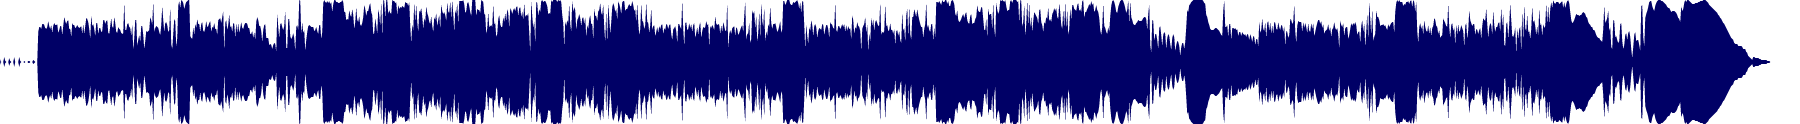 waveform of track #70836